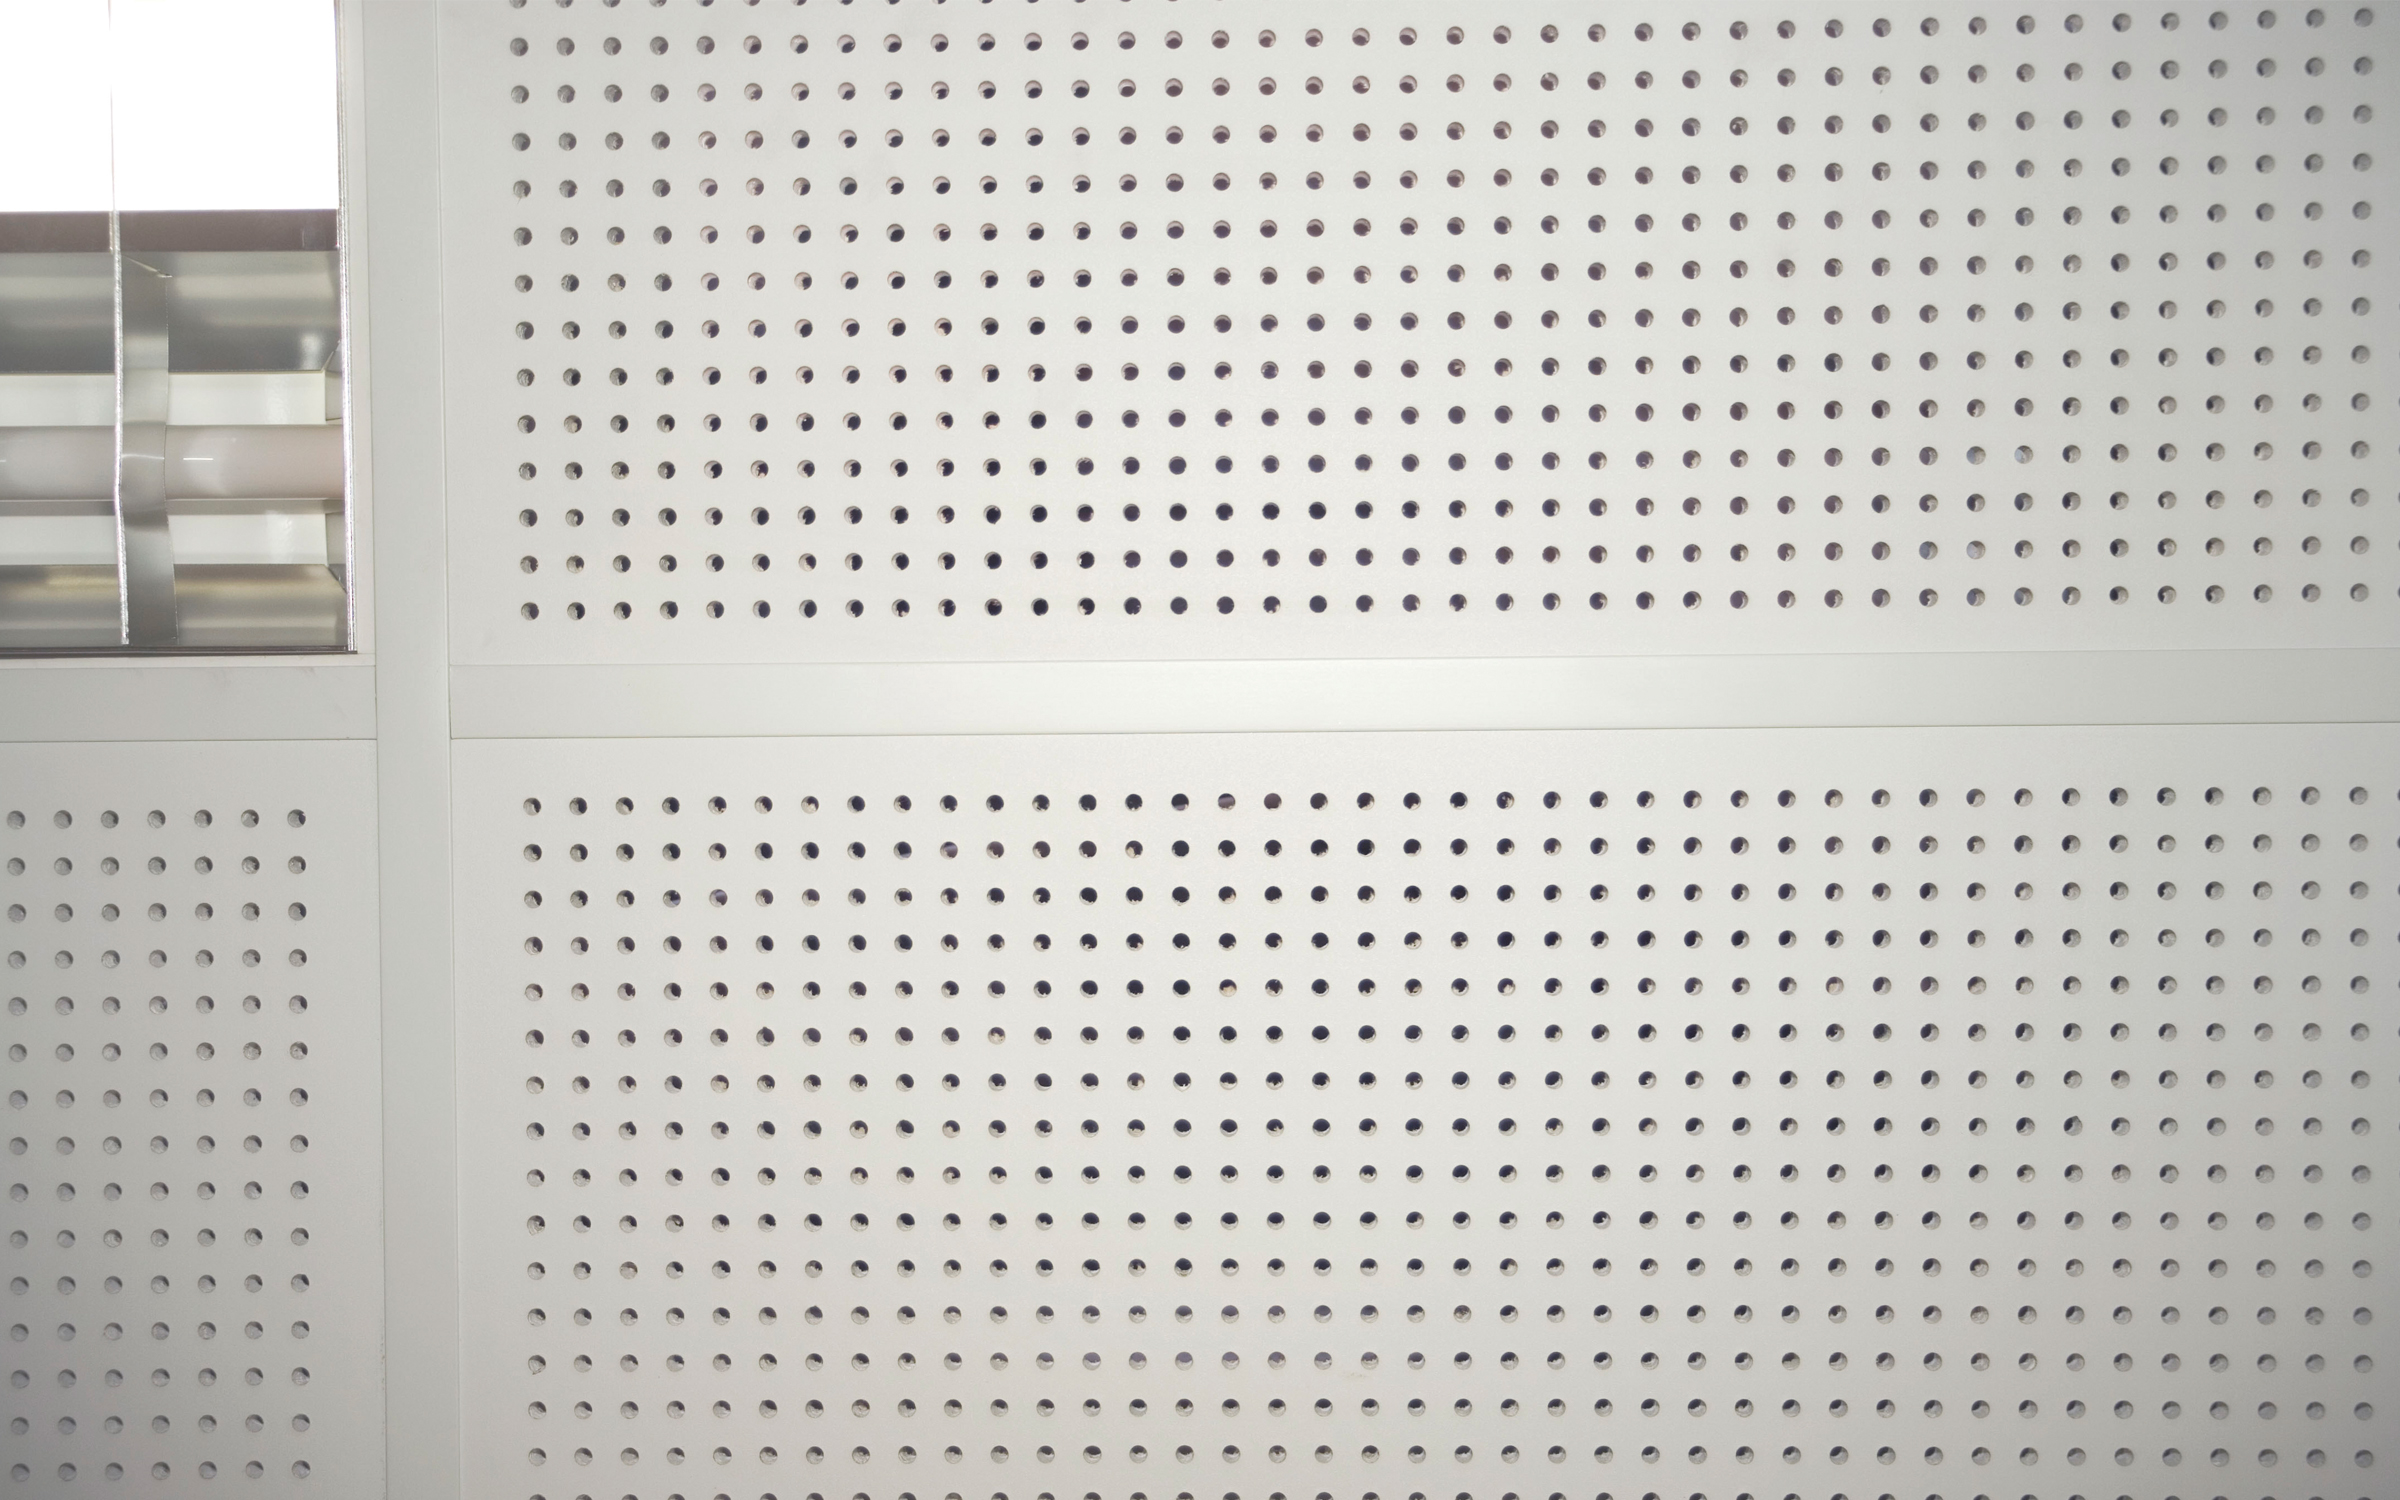 Perforated Ceiling Tiles For Exposed Grid Systems